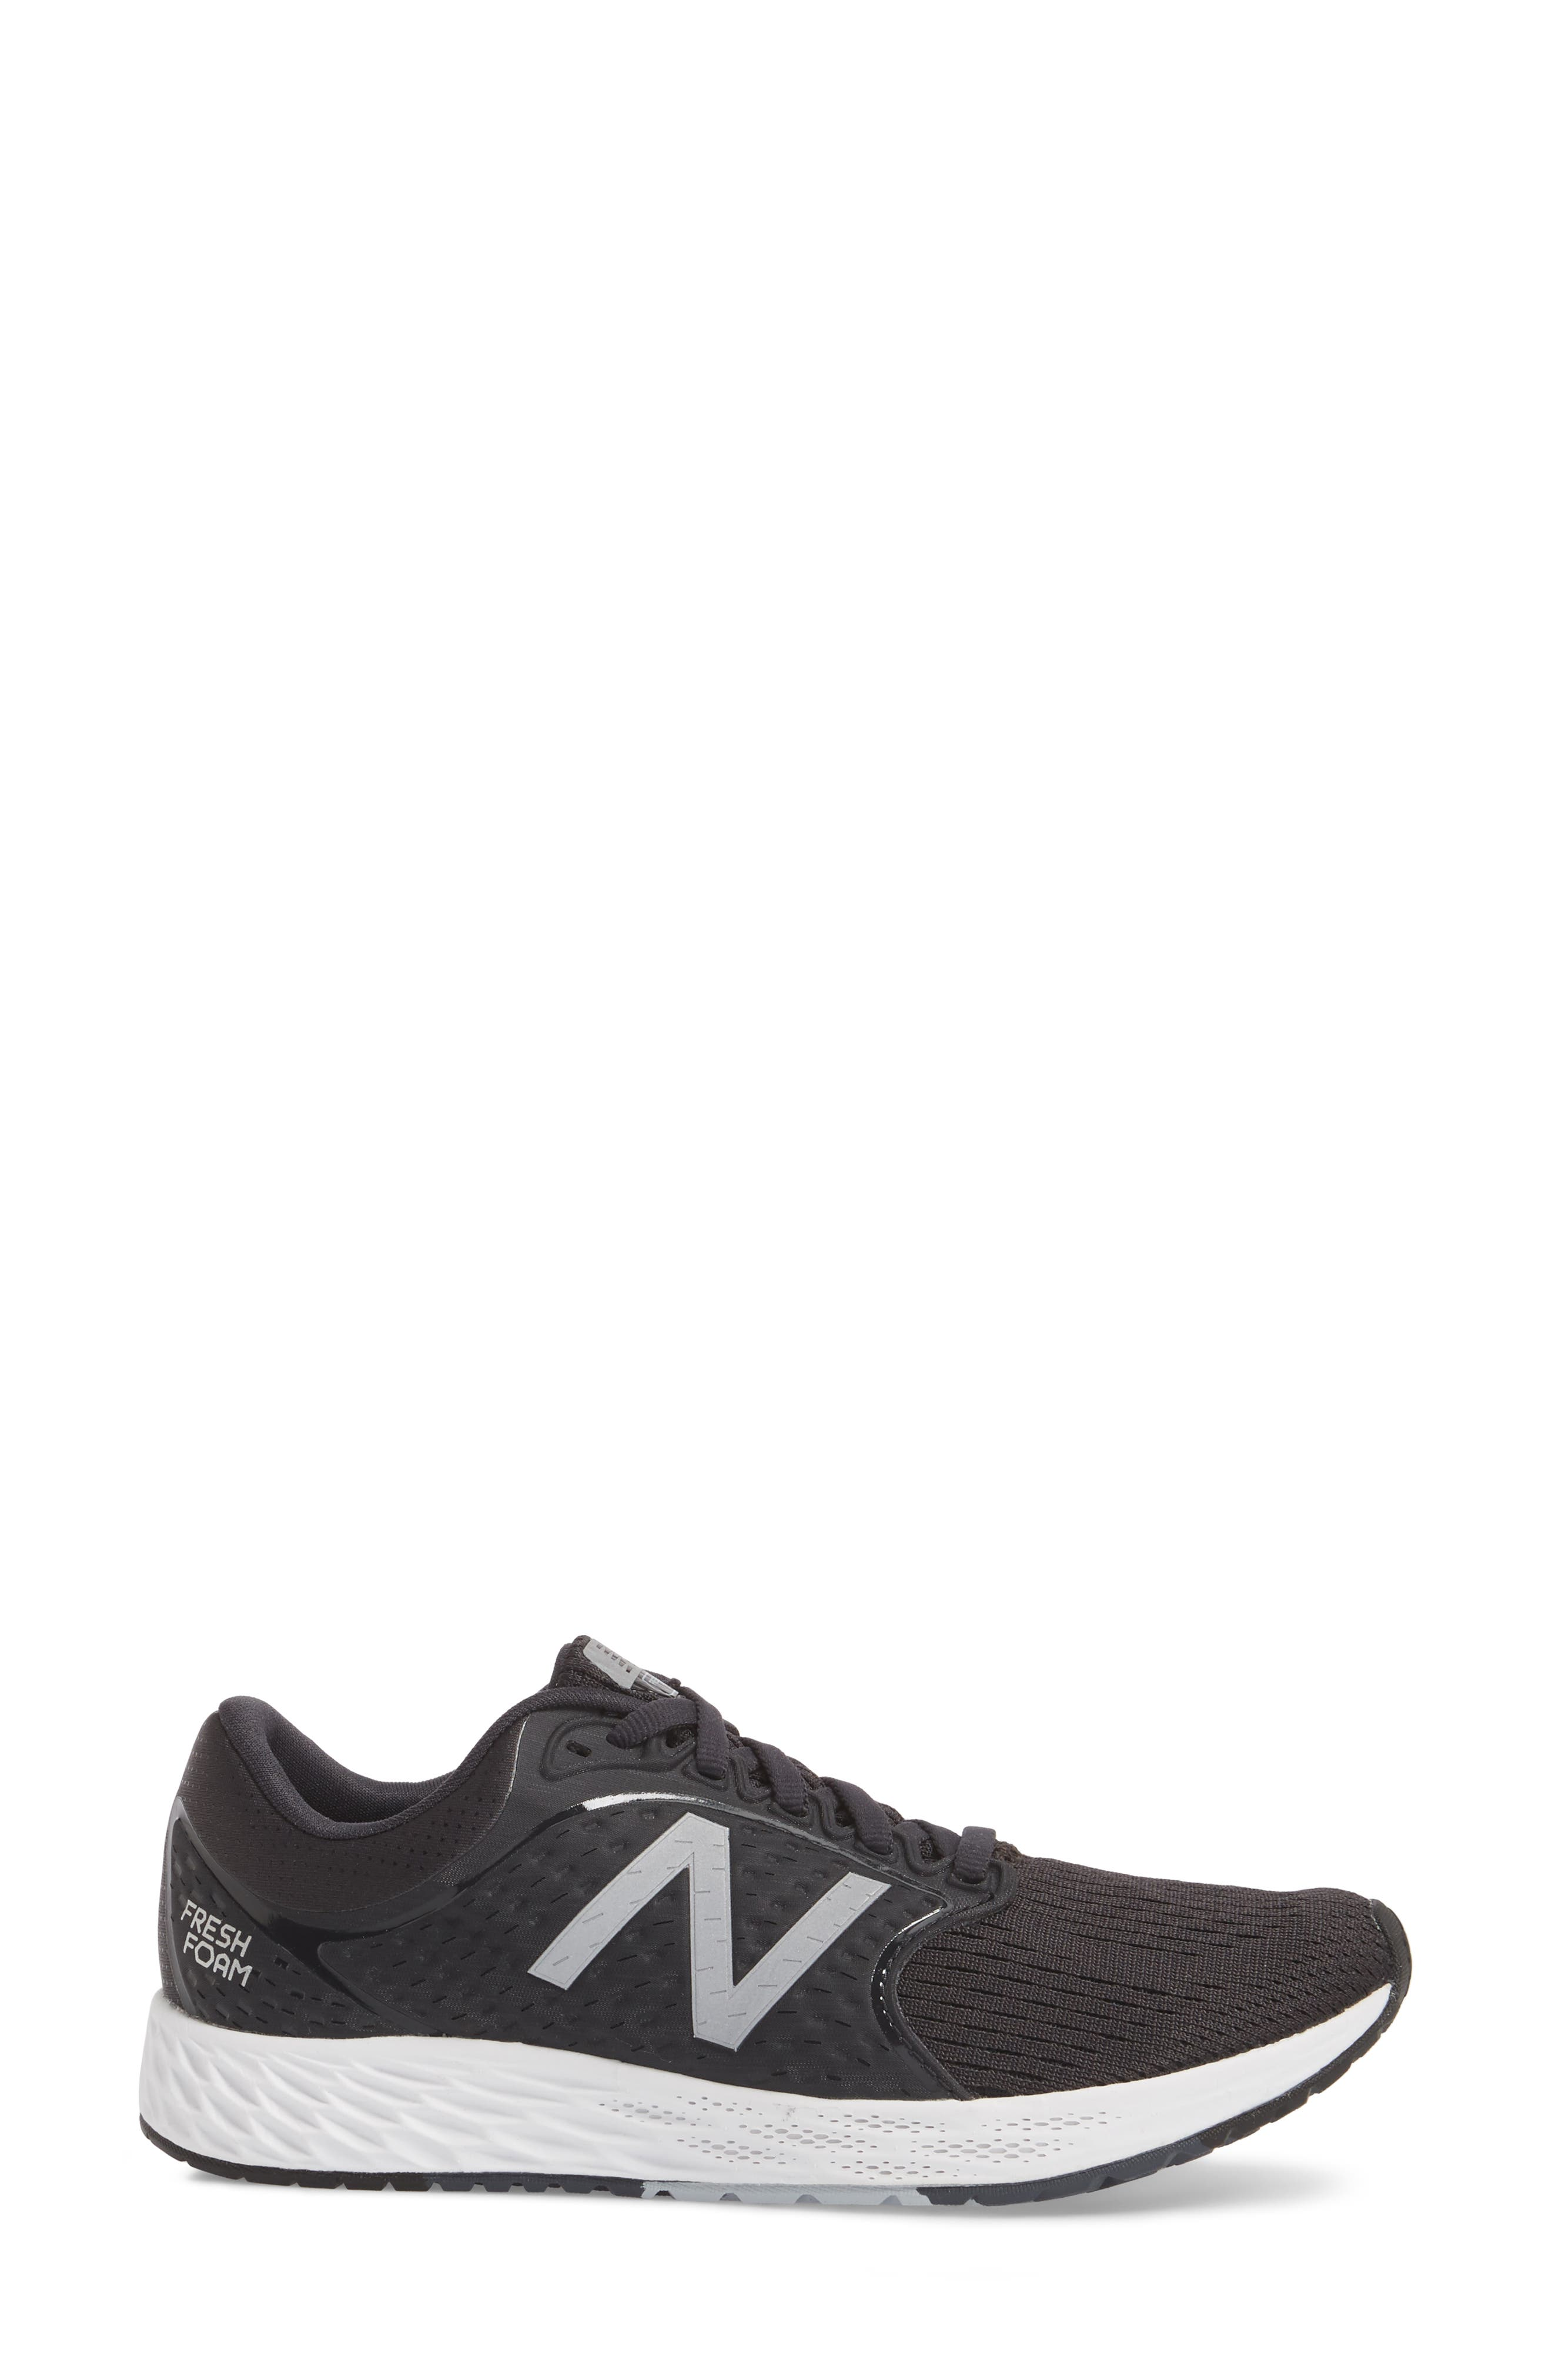 Alternate Image 3  - New Balance Fresh Foam Zante v4 Running Shoe (Women)